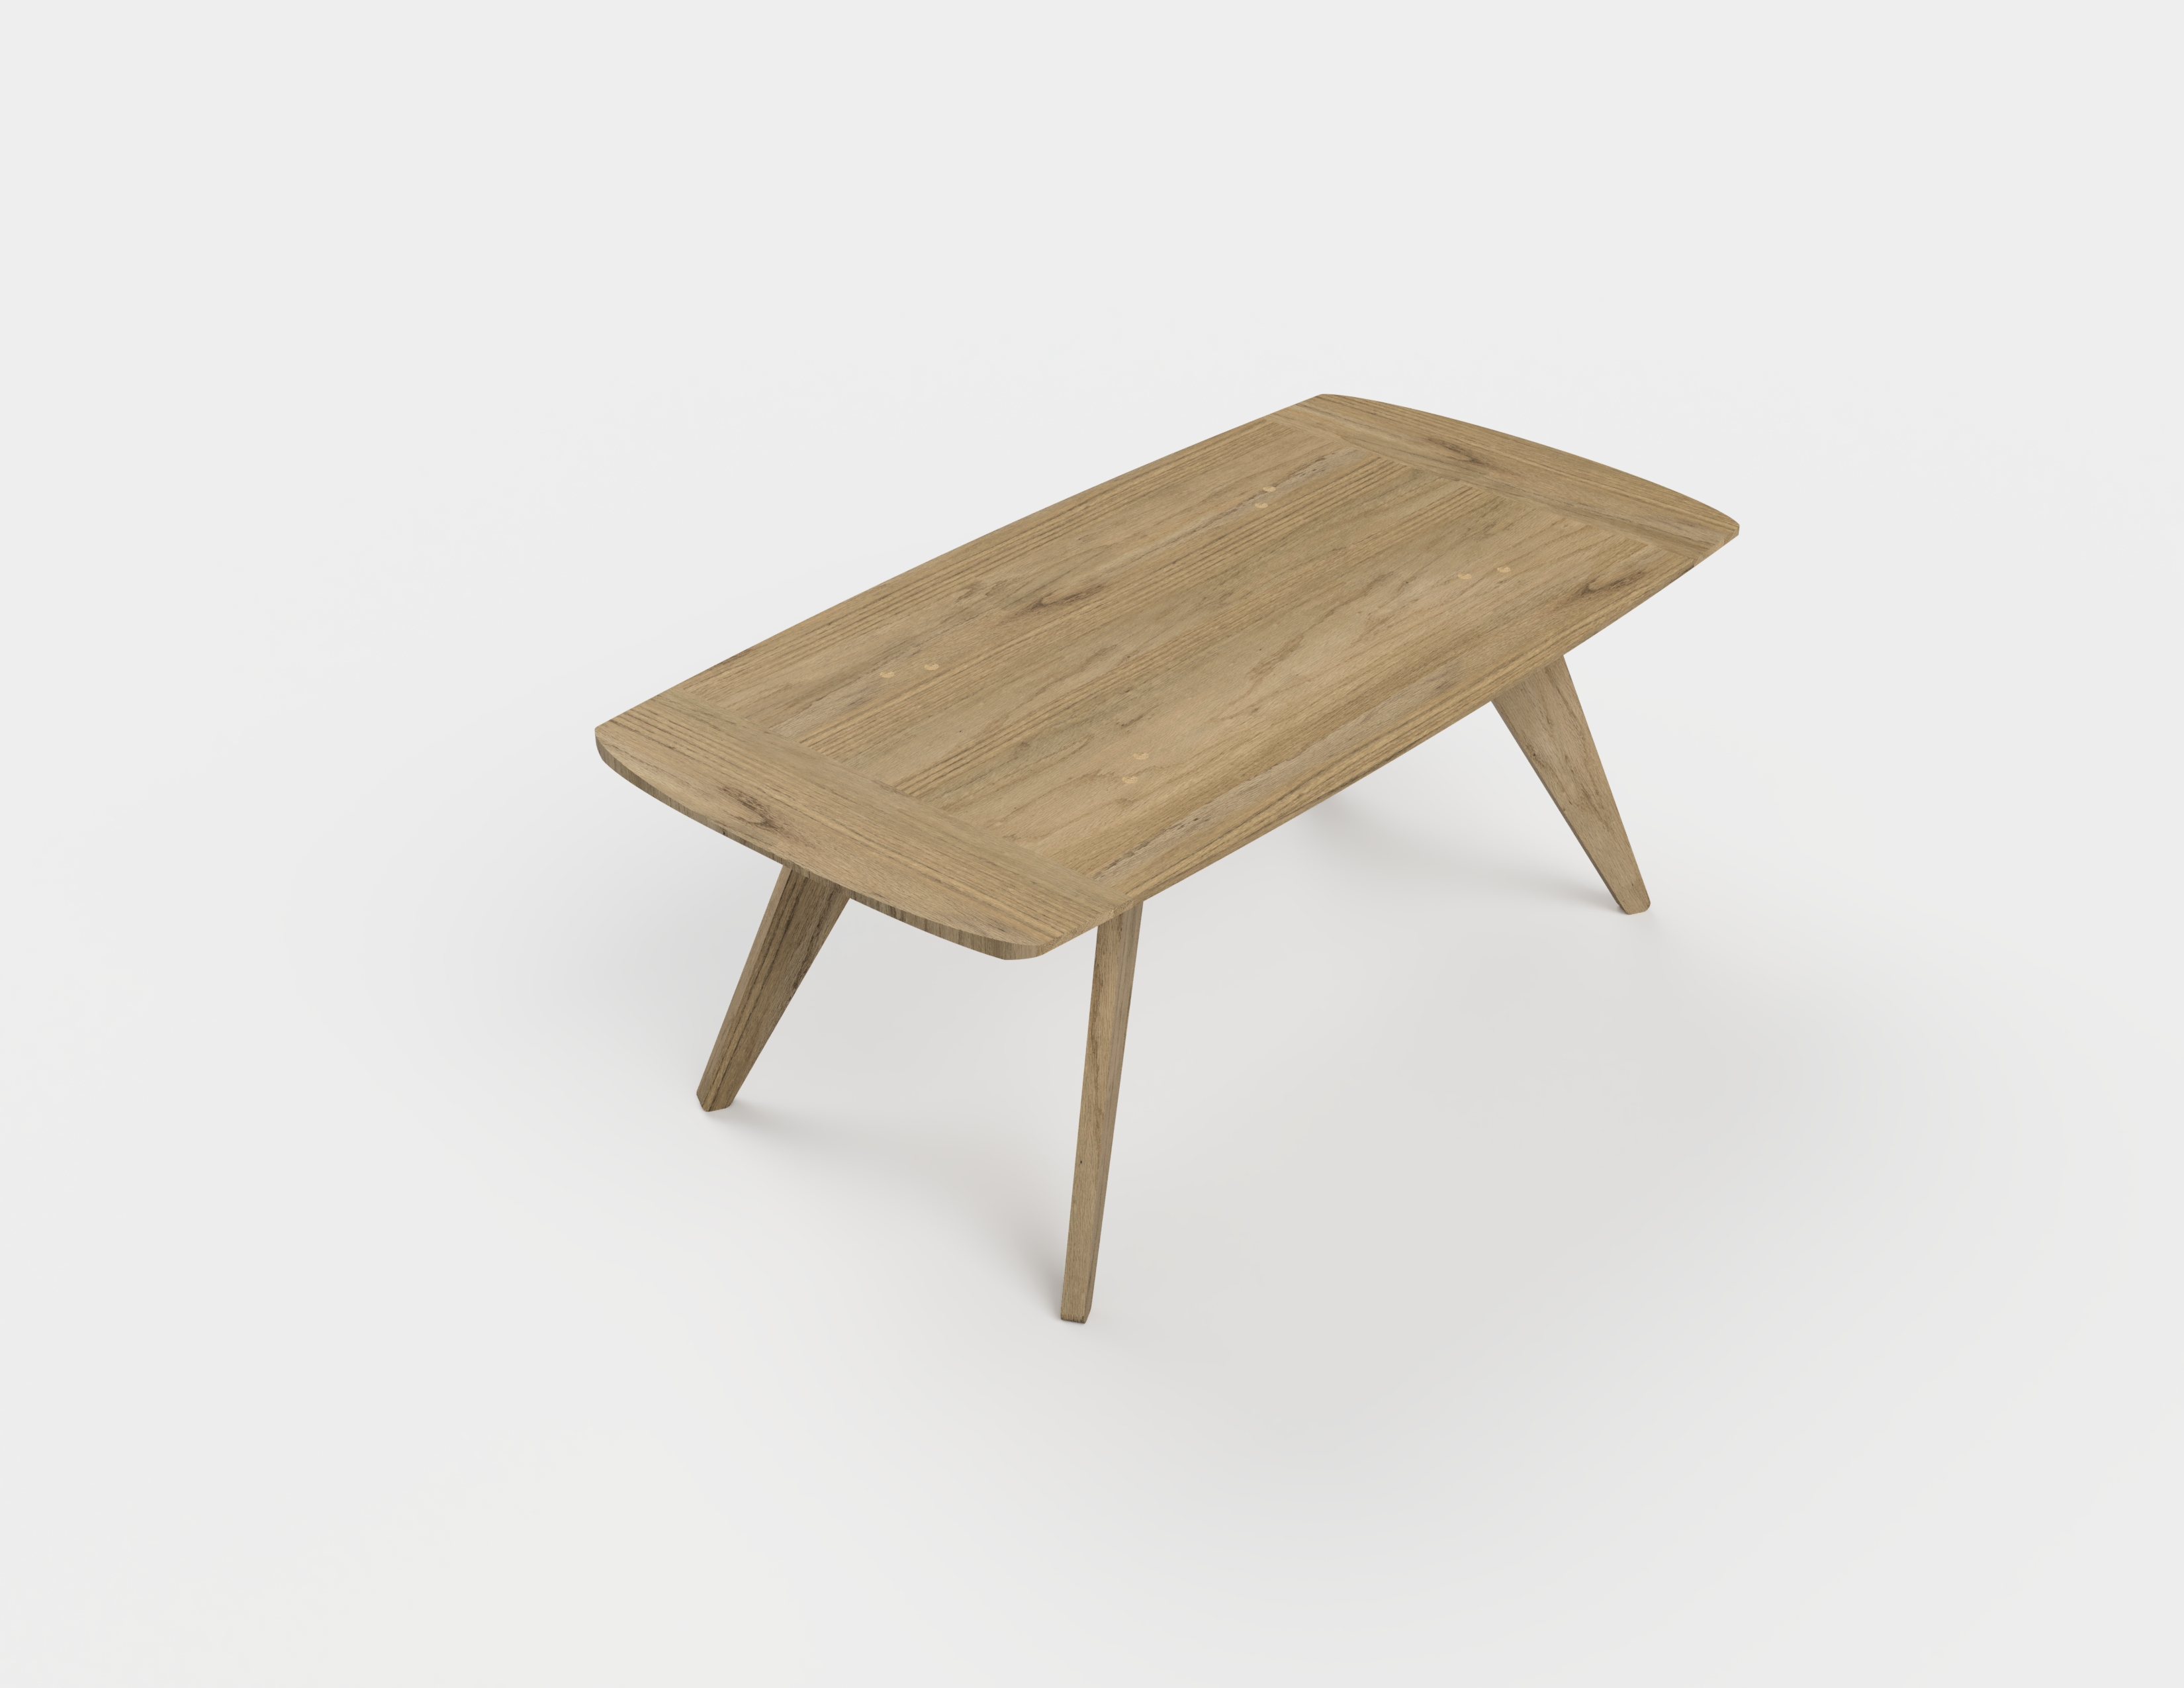 A 3D model of a solid oak, mid-century style coffee table